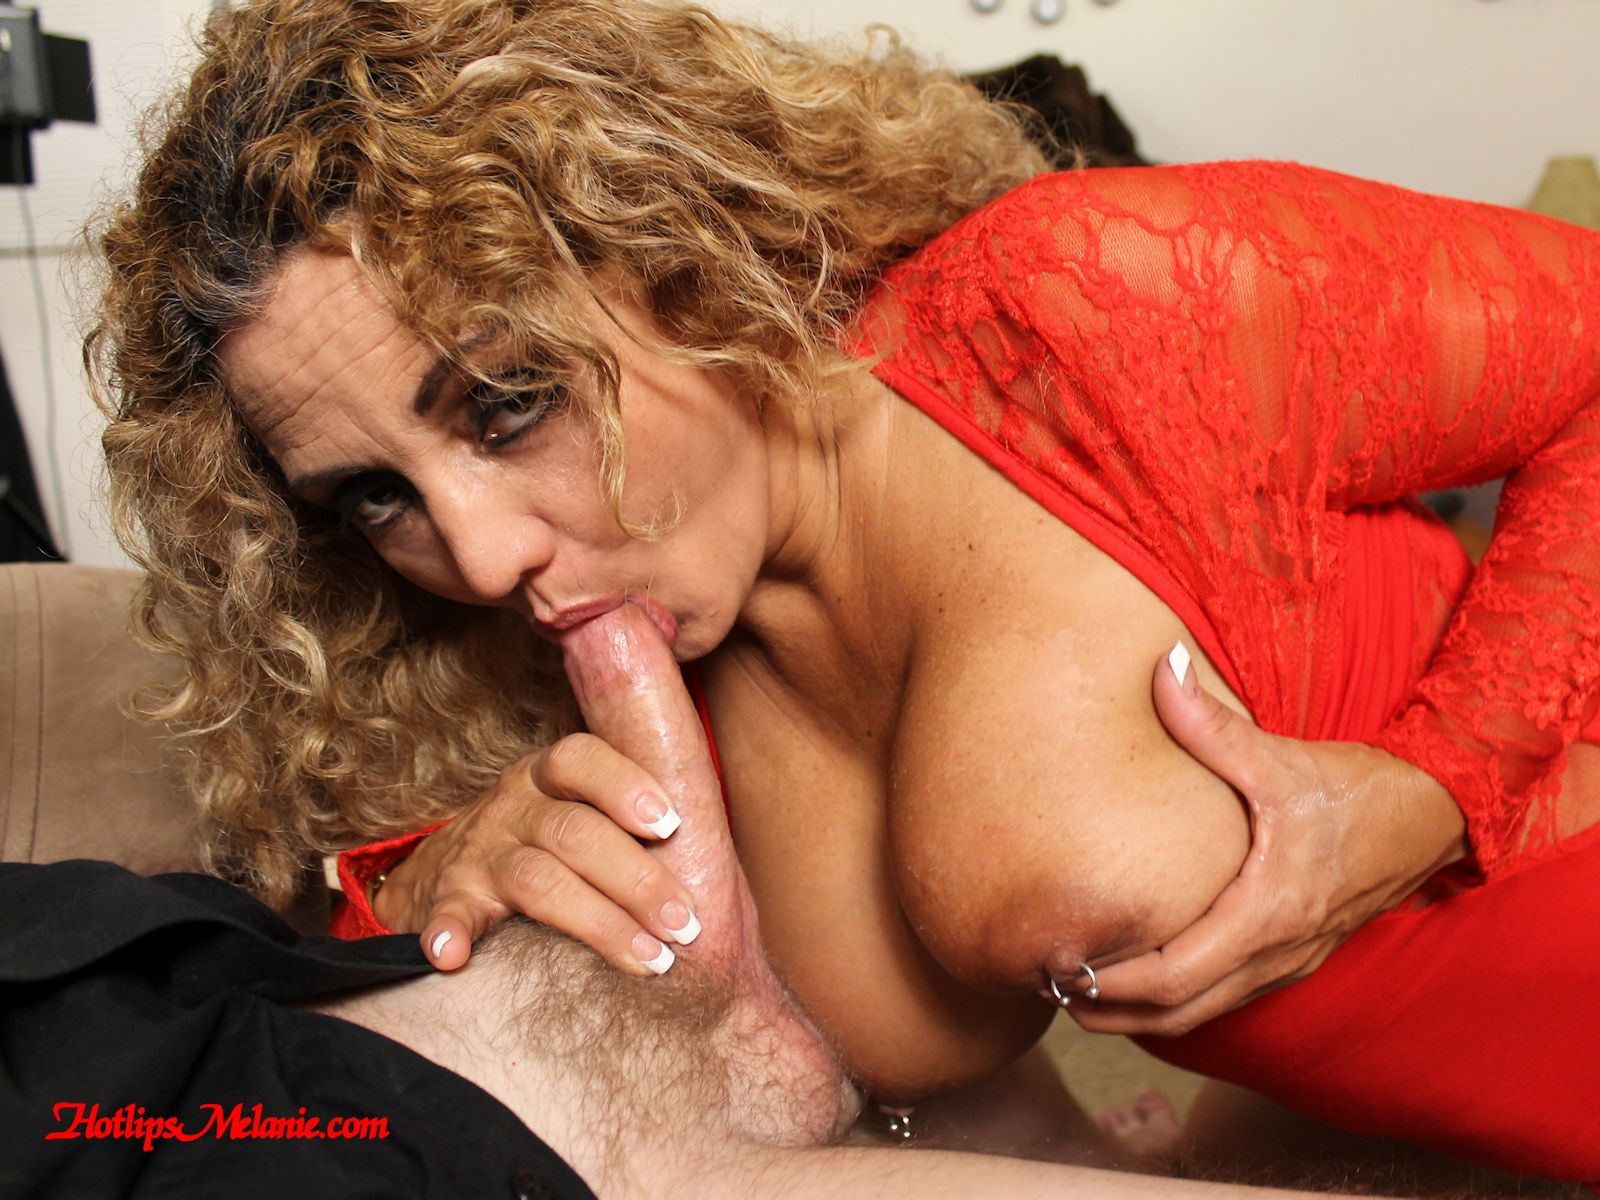 With you Red hed latina black cock are not